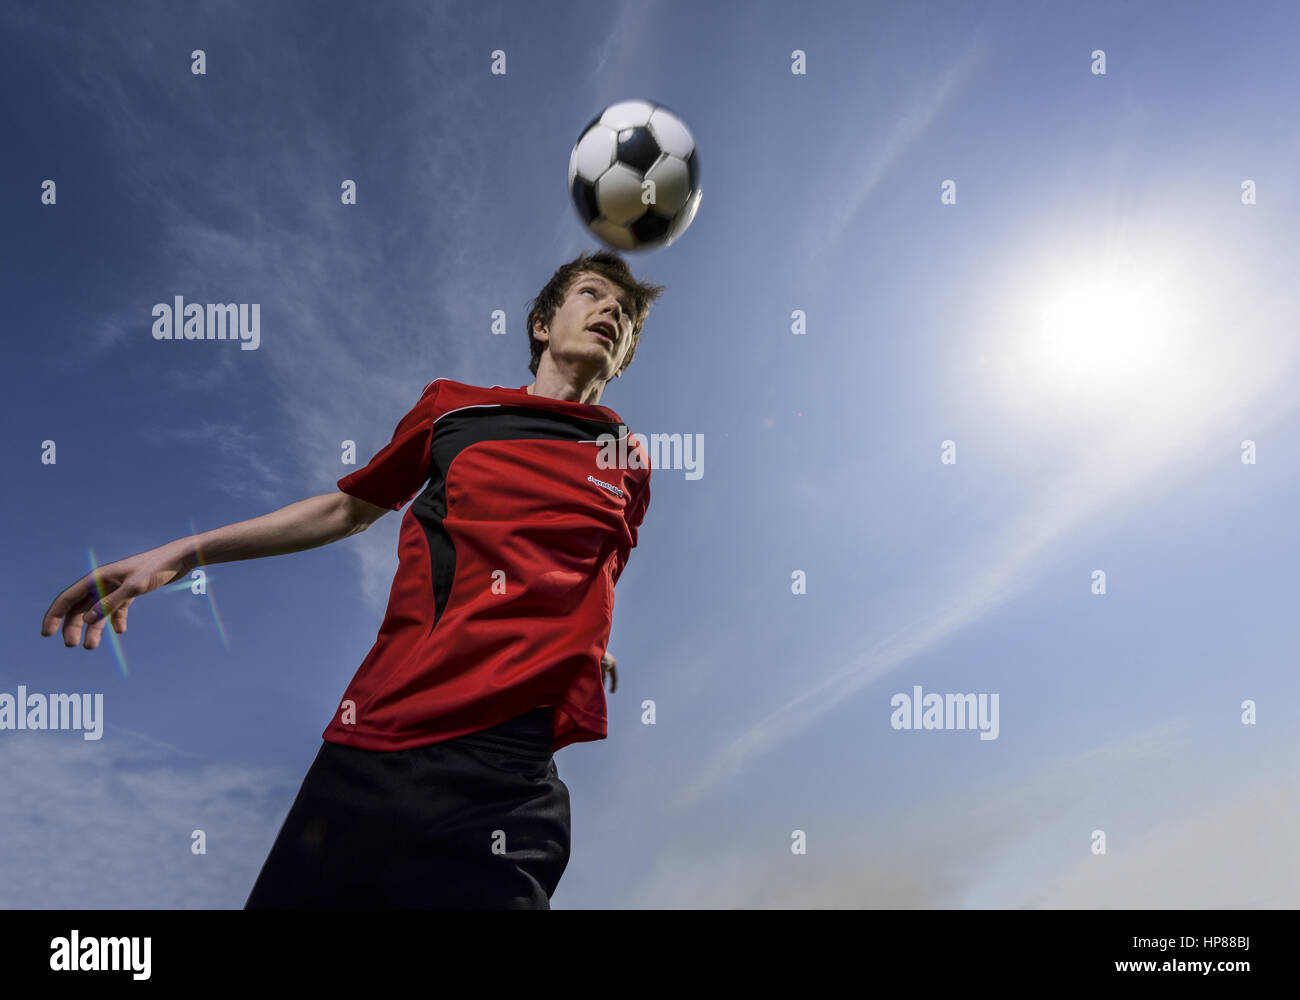 Fussballer koepft Ball (model-released) - Stock Image